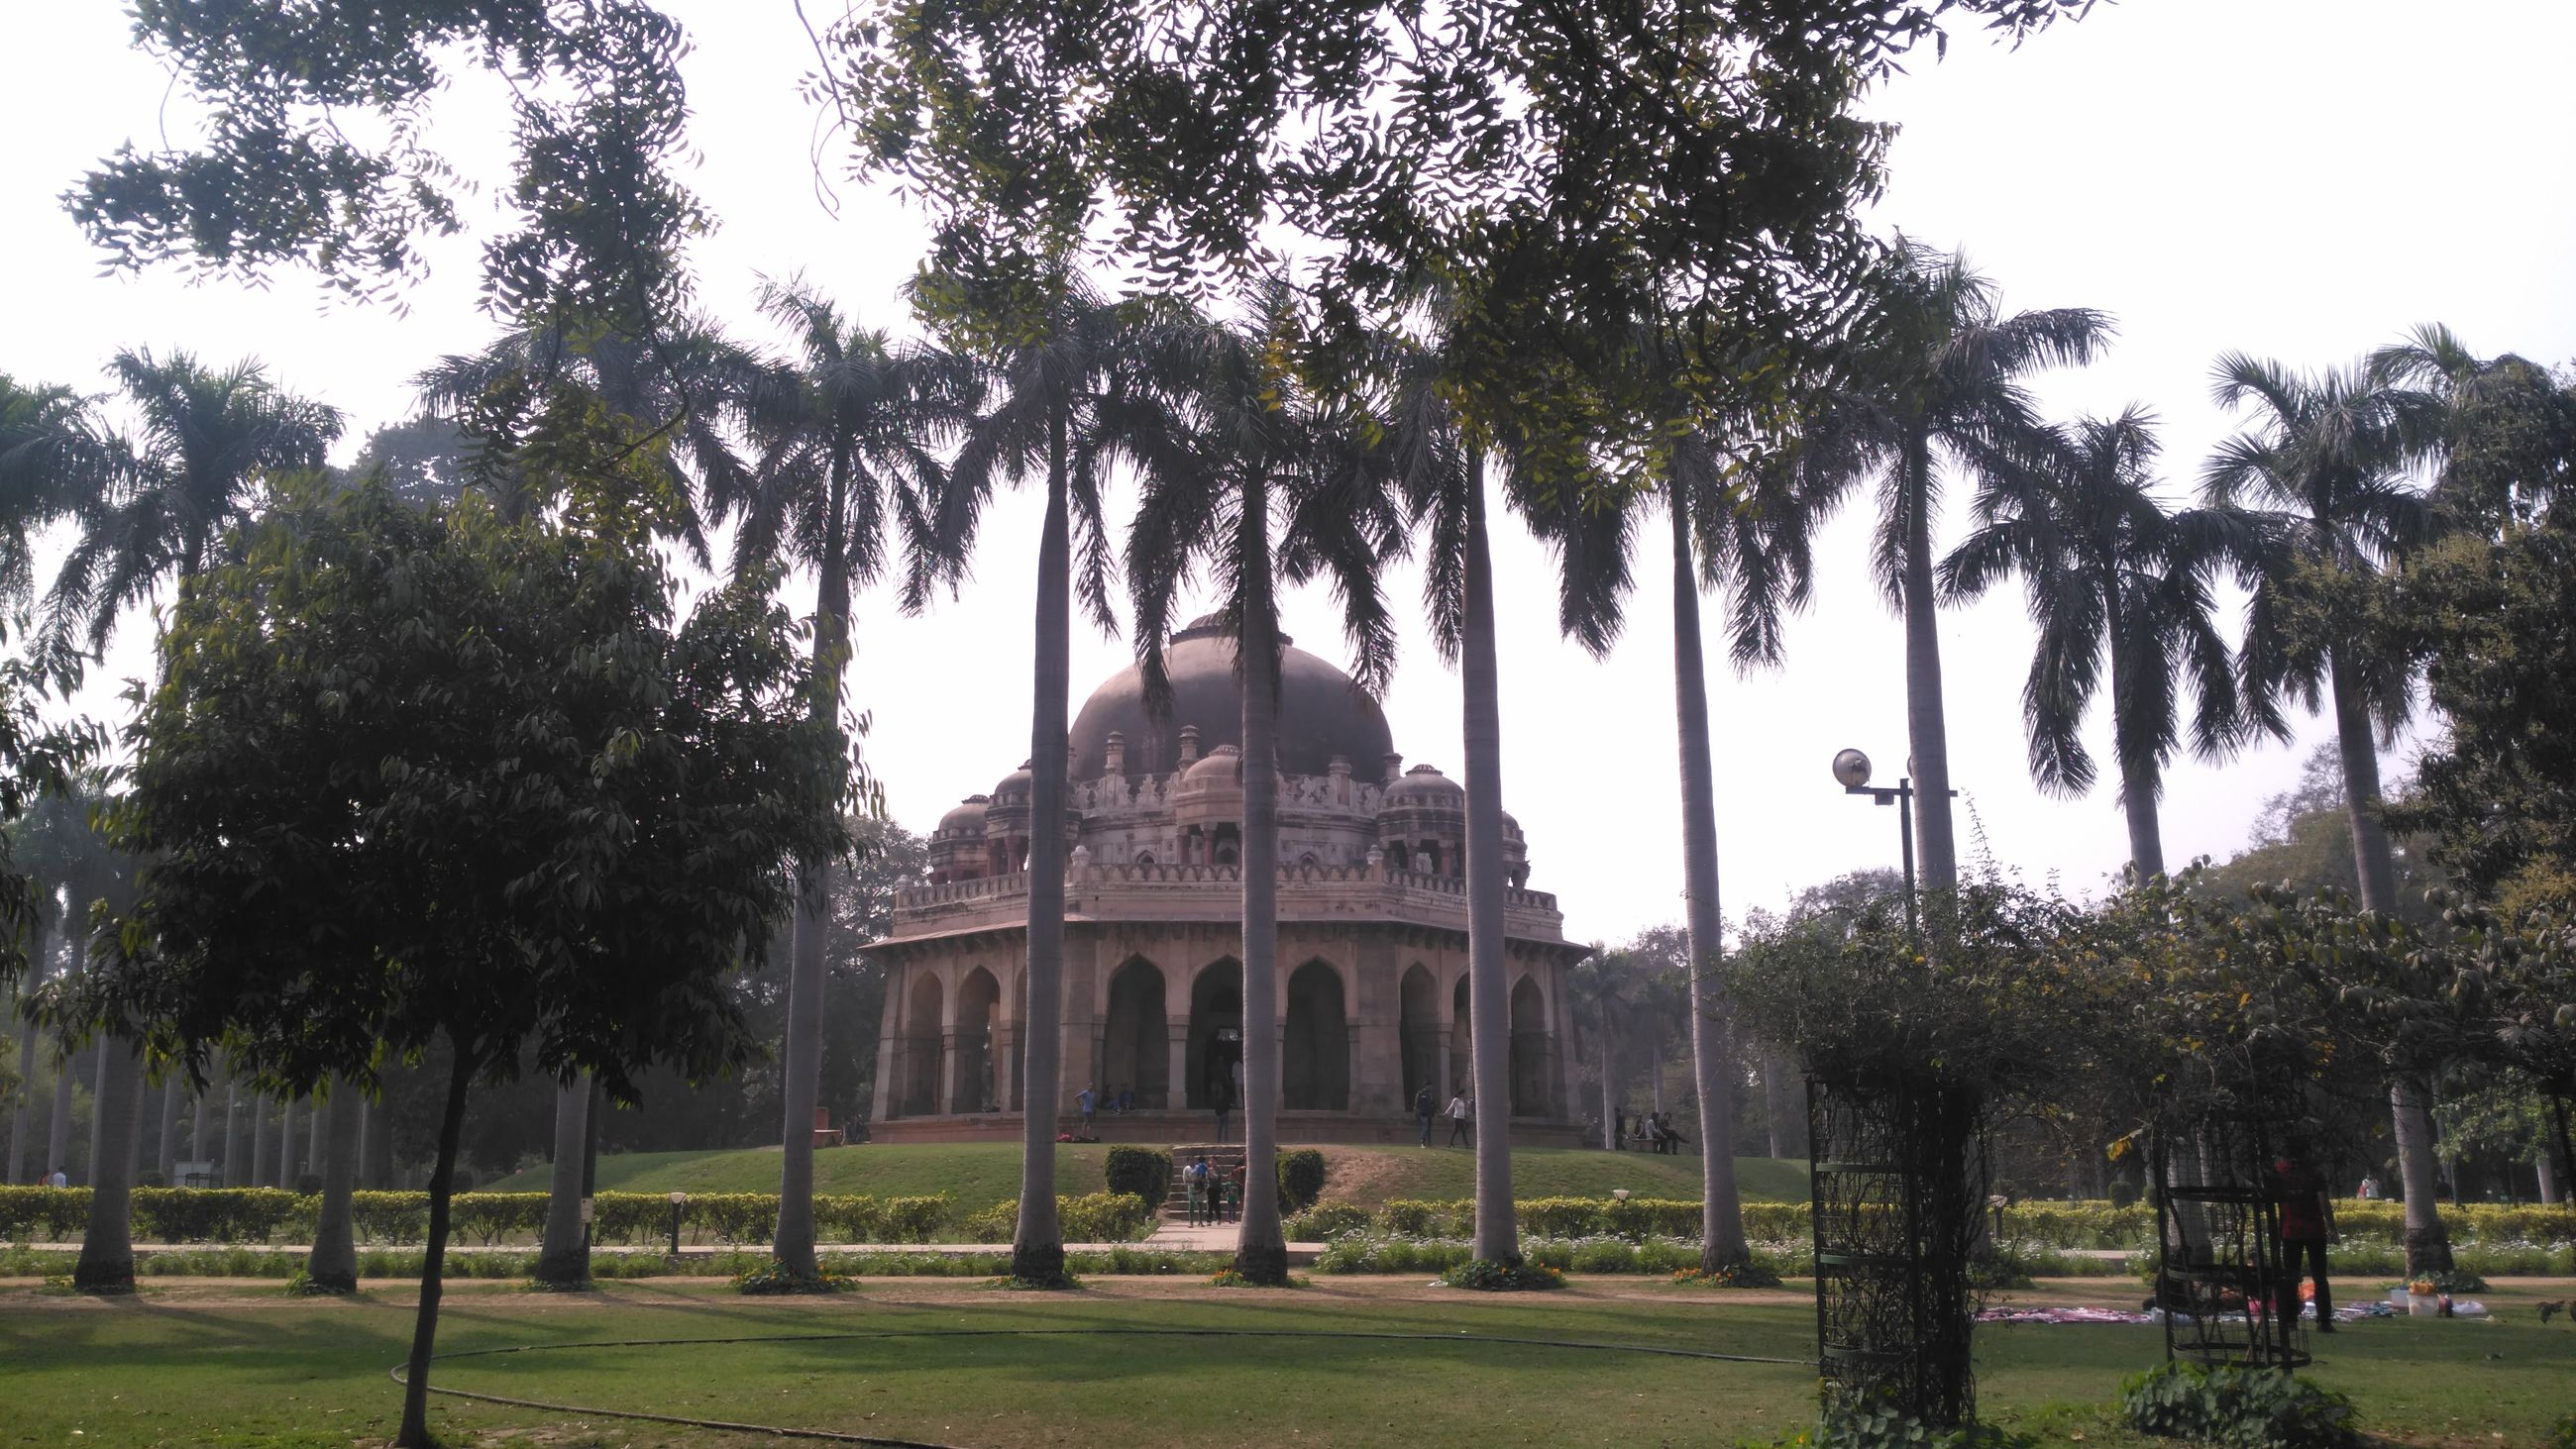 tree, architecture, built structure, building exterior, famous place, religion, grass, clear sky, history, travel destinations, place of worship, tourism, spirituality, travel, lawn, sky, international landmark, dome, low angle view, facade